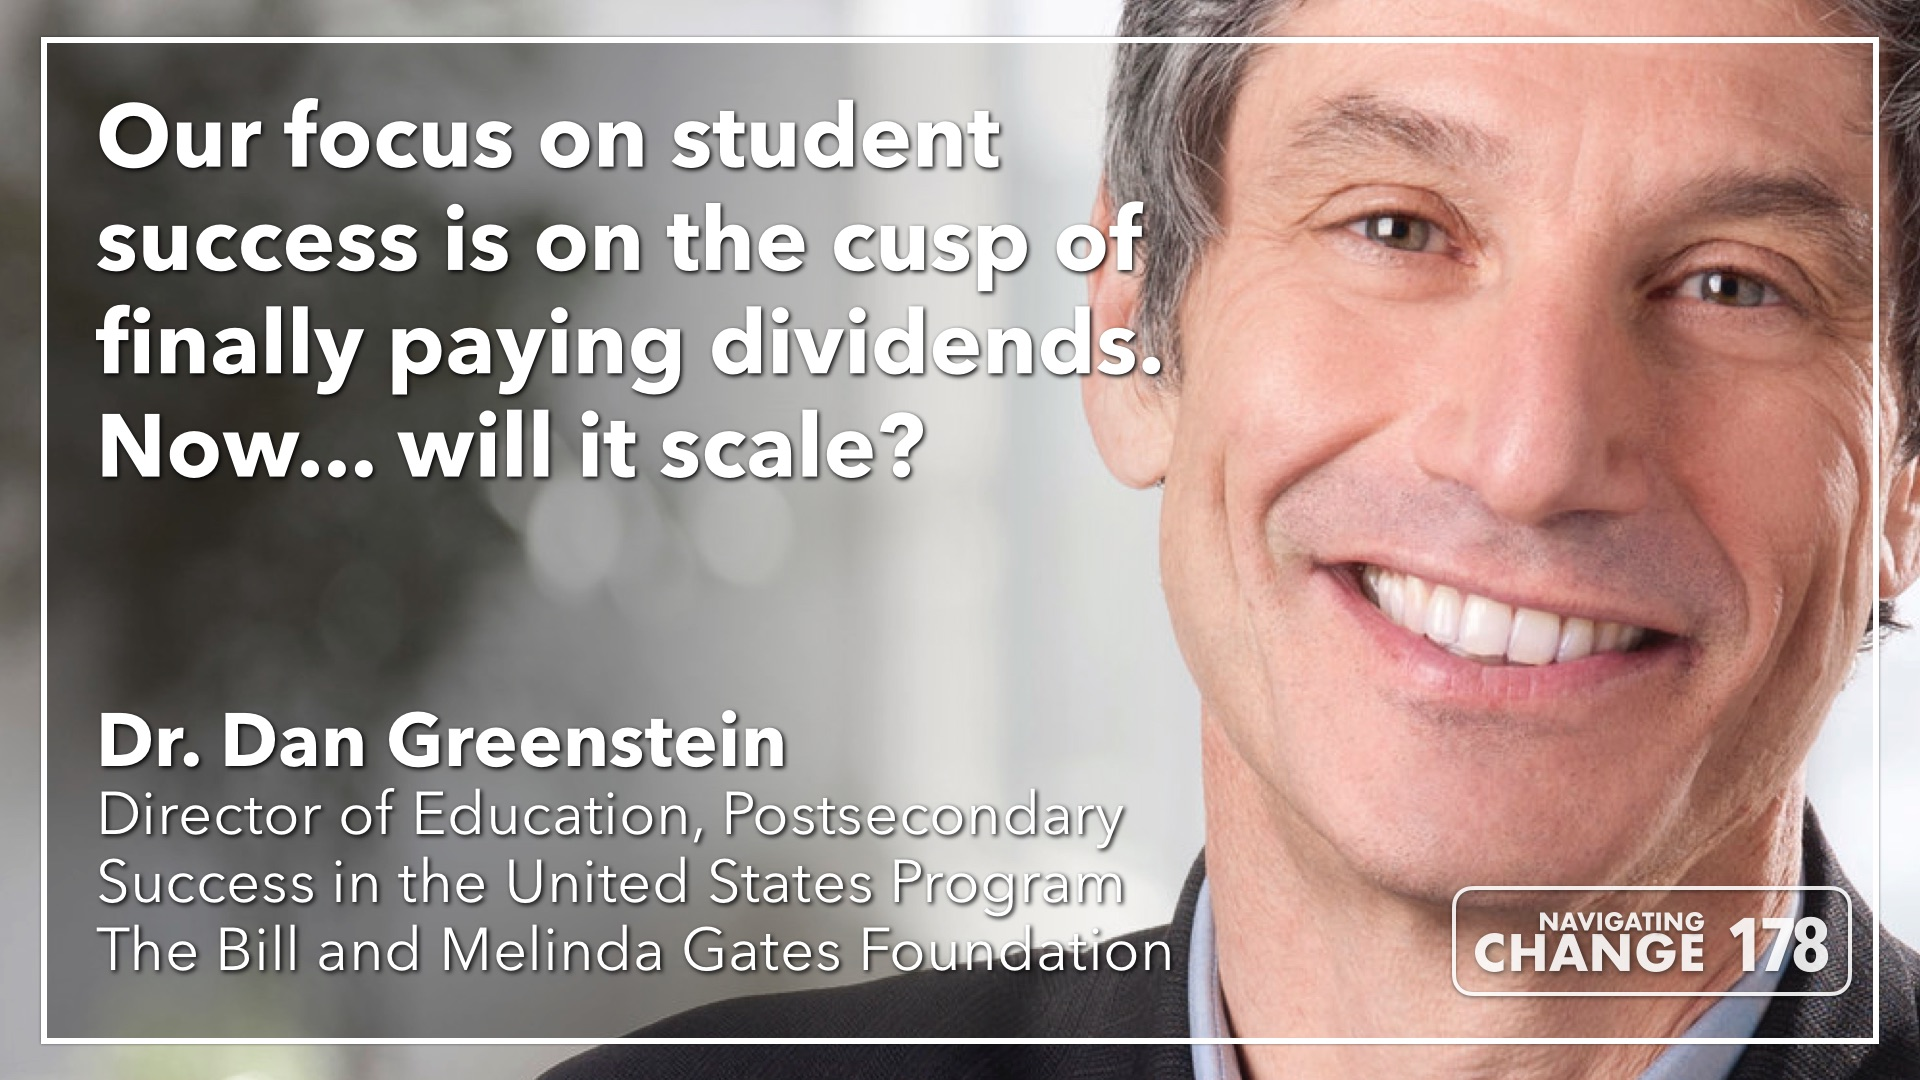 Listen to Dan Greenstein on Navigating Change: The Education Podcast